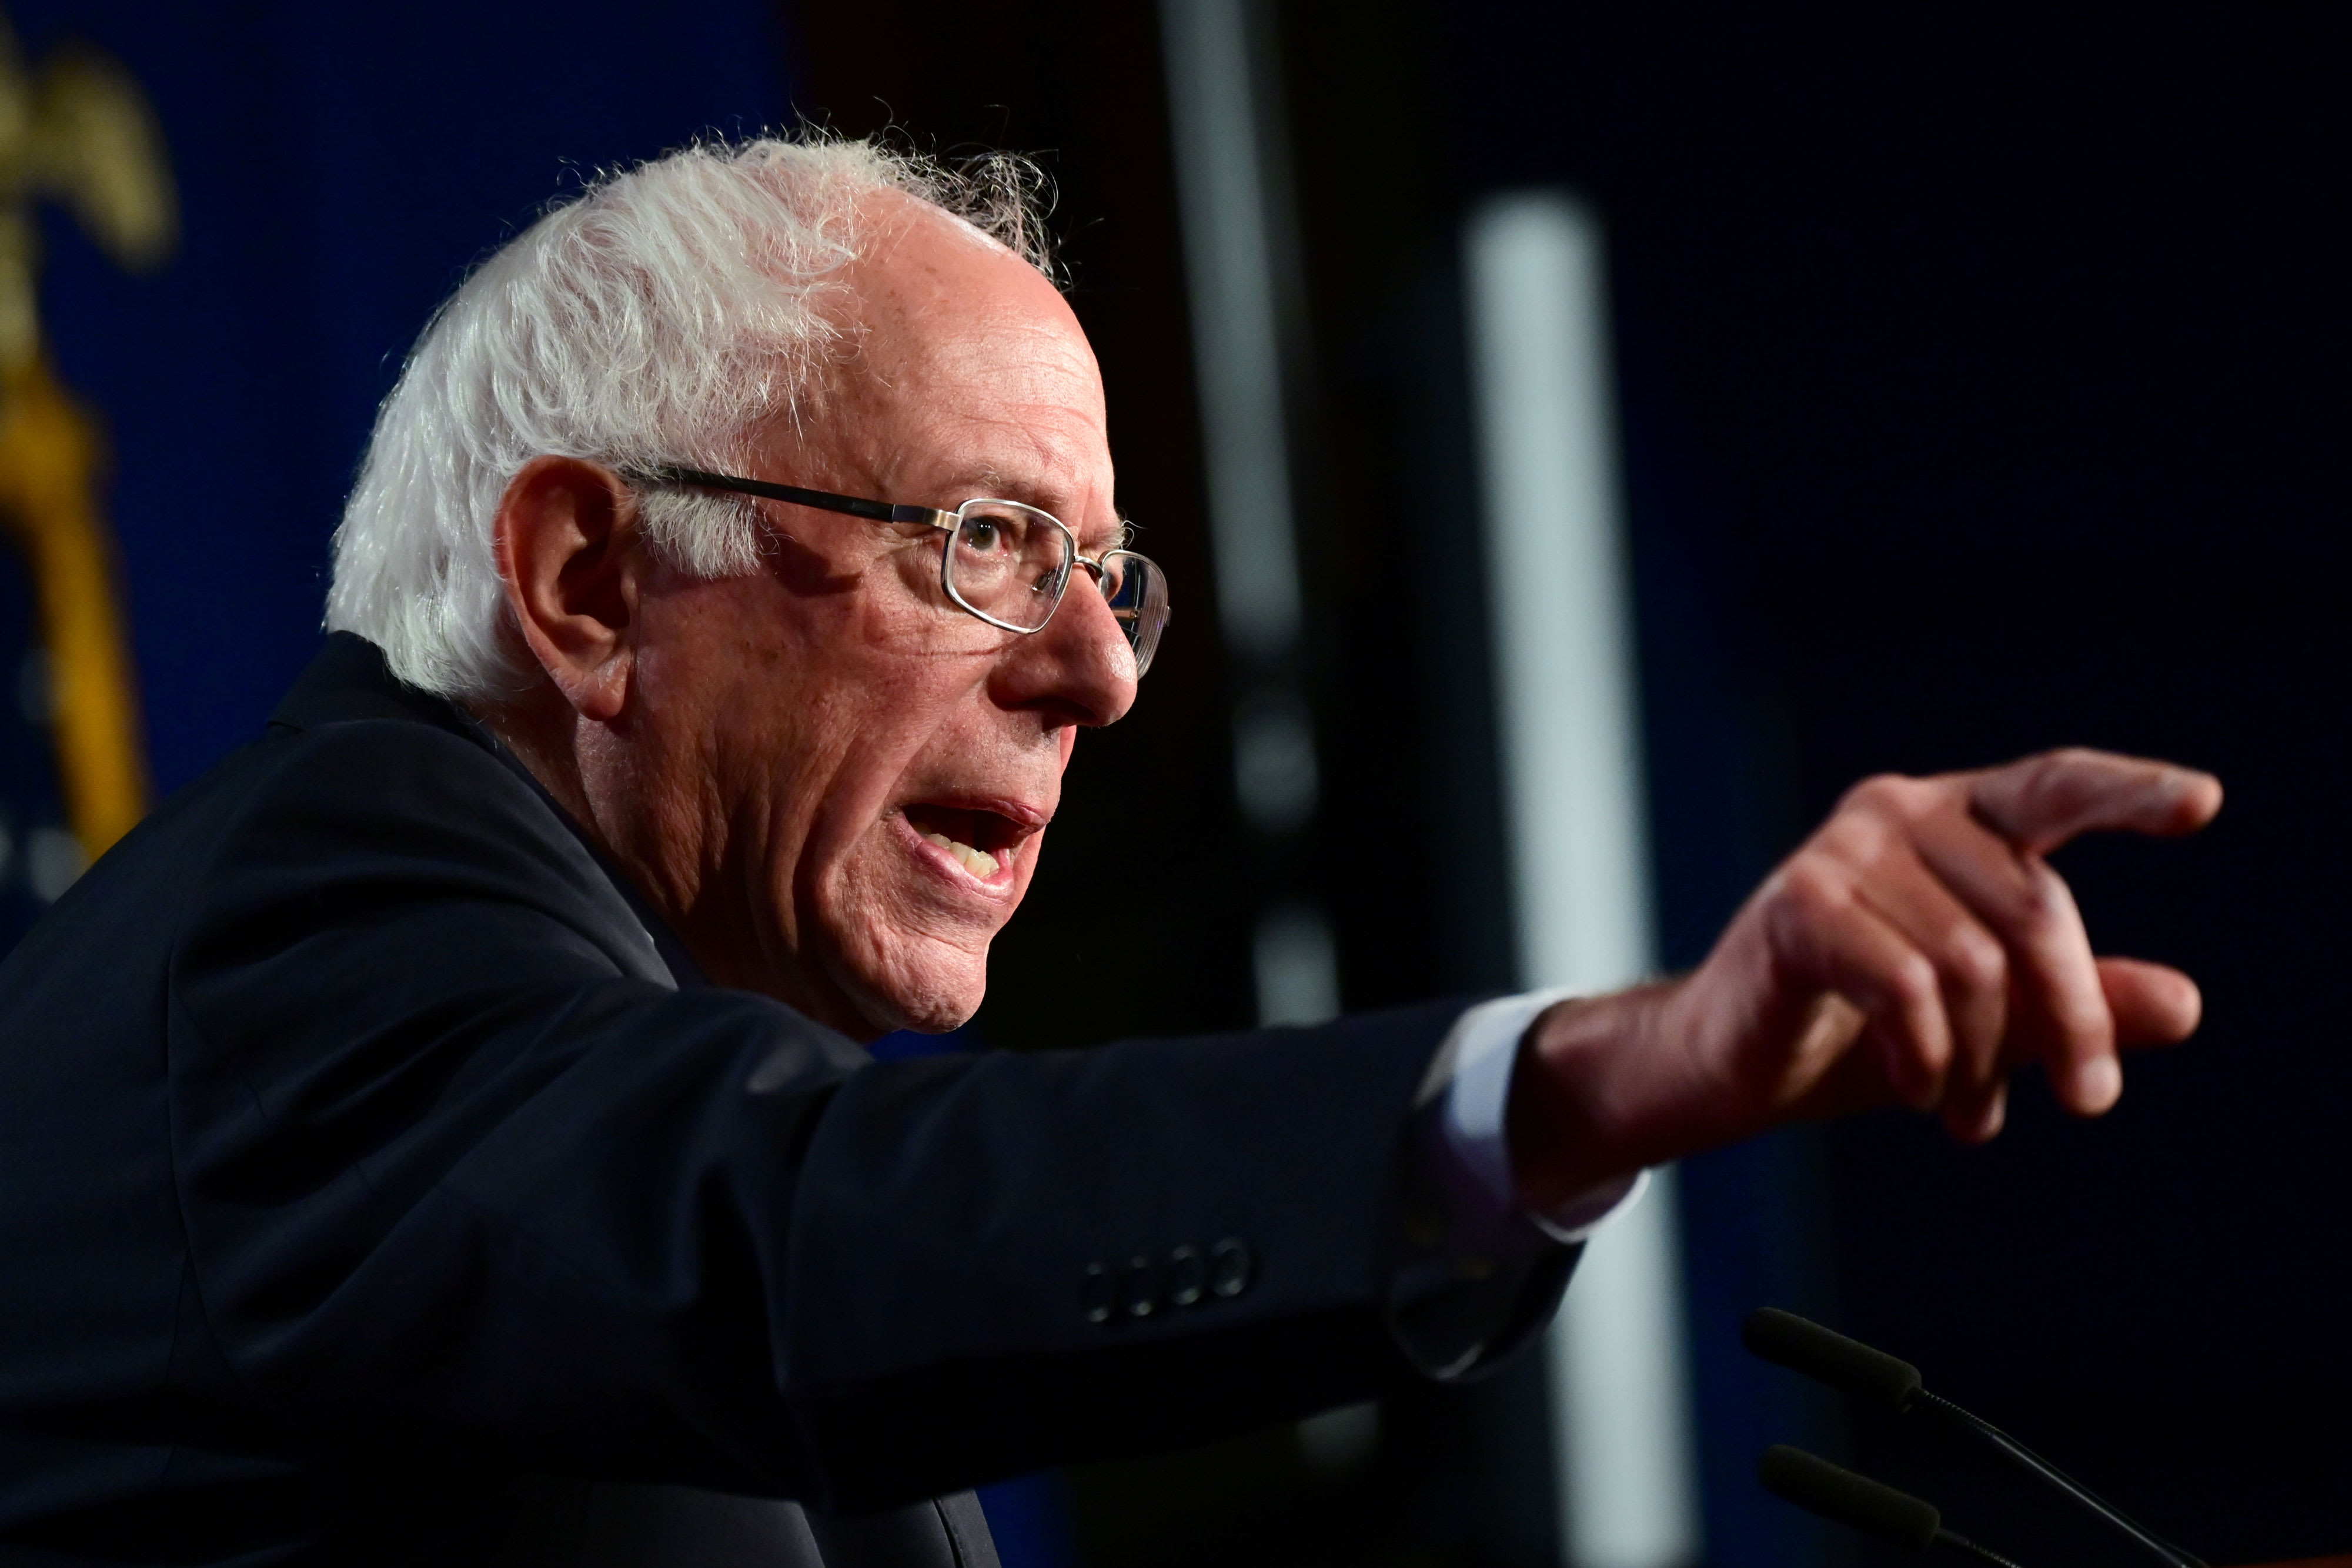 Bernie Sanders plans to save media by restricting Facebook and Google